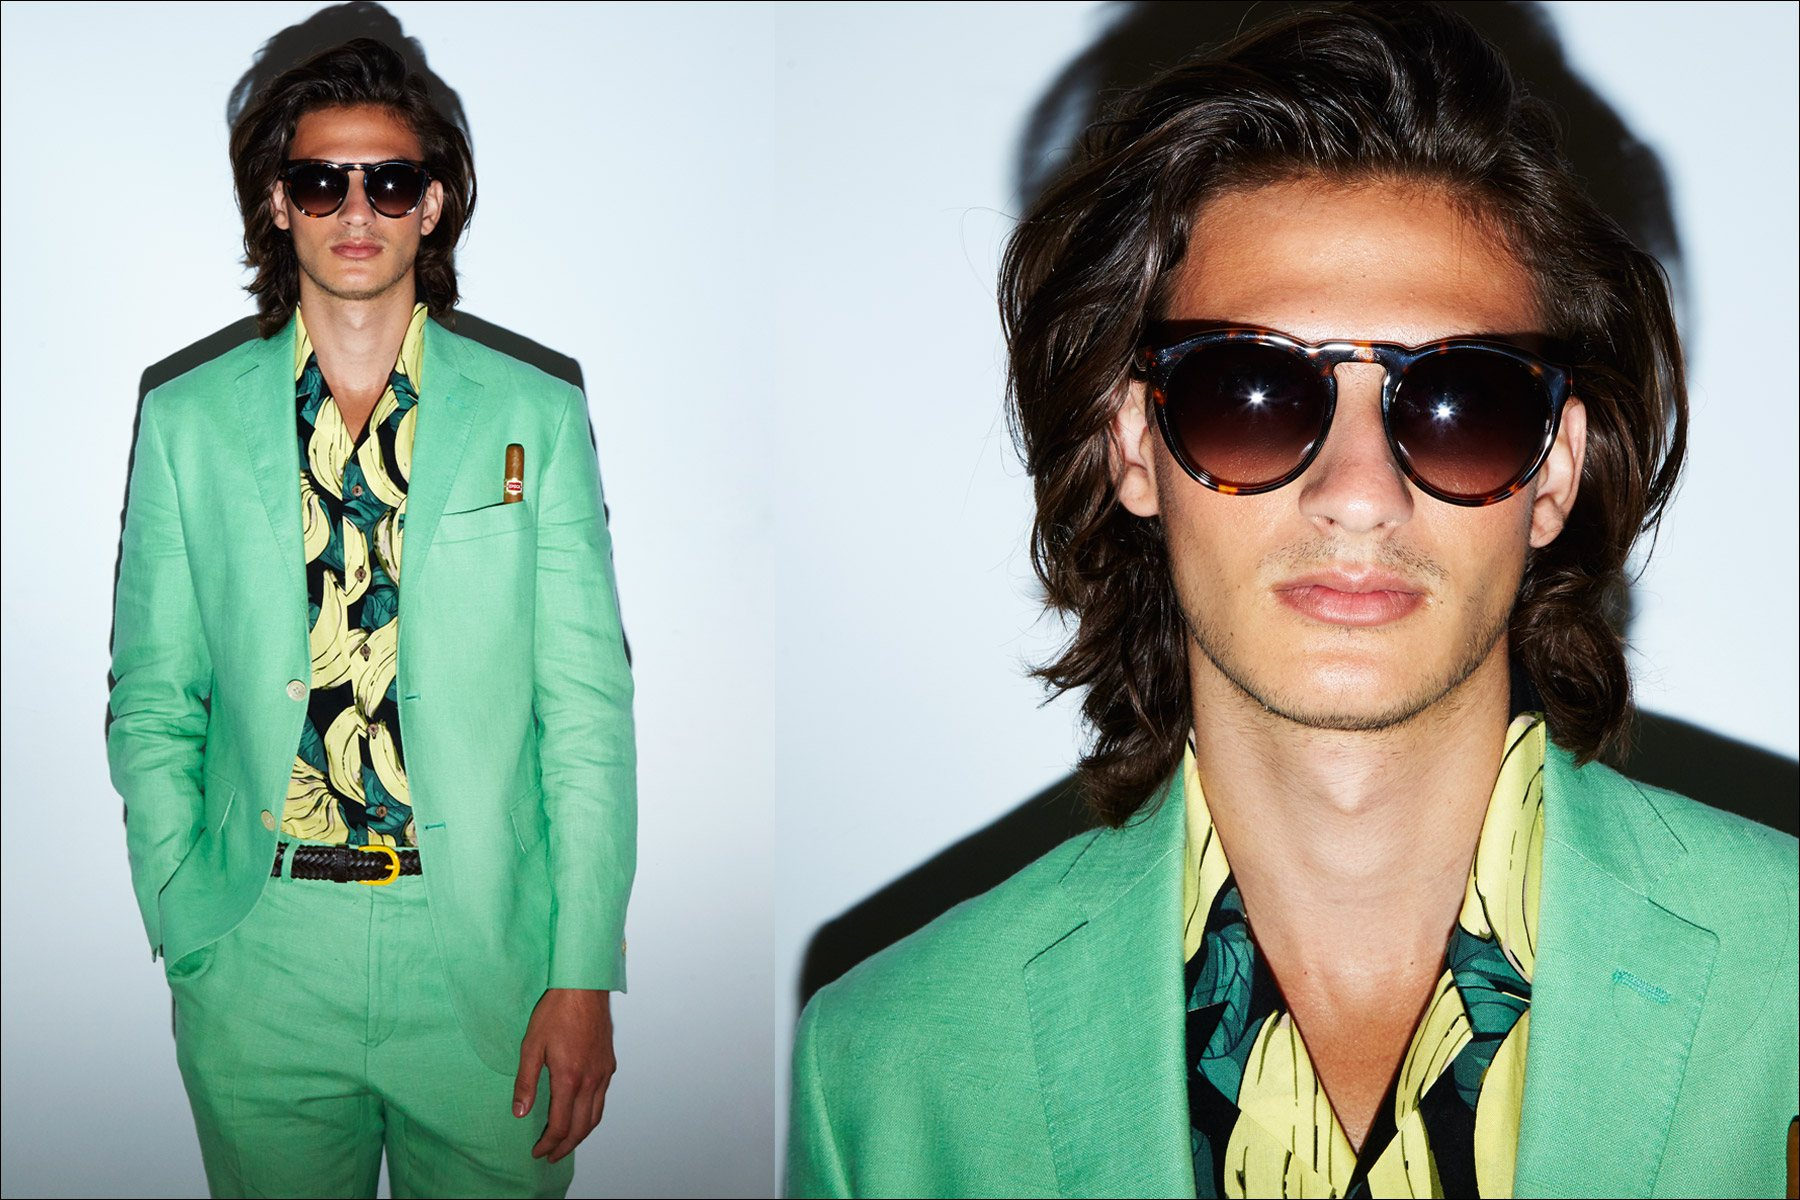 A vivid mint suit on a male model, snapped backstage at David Hart for Spring 2018. Photography by Alexander Thompson for Ponyboy magazine New York.